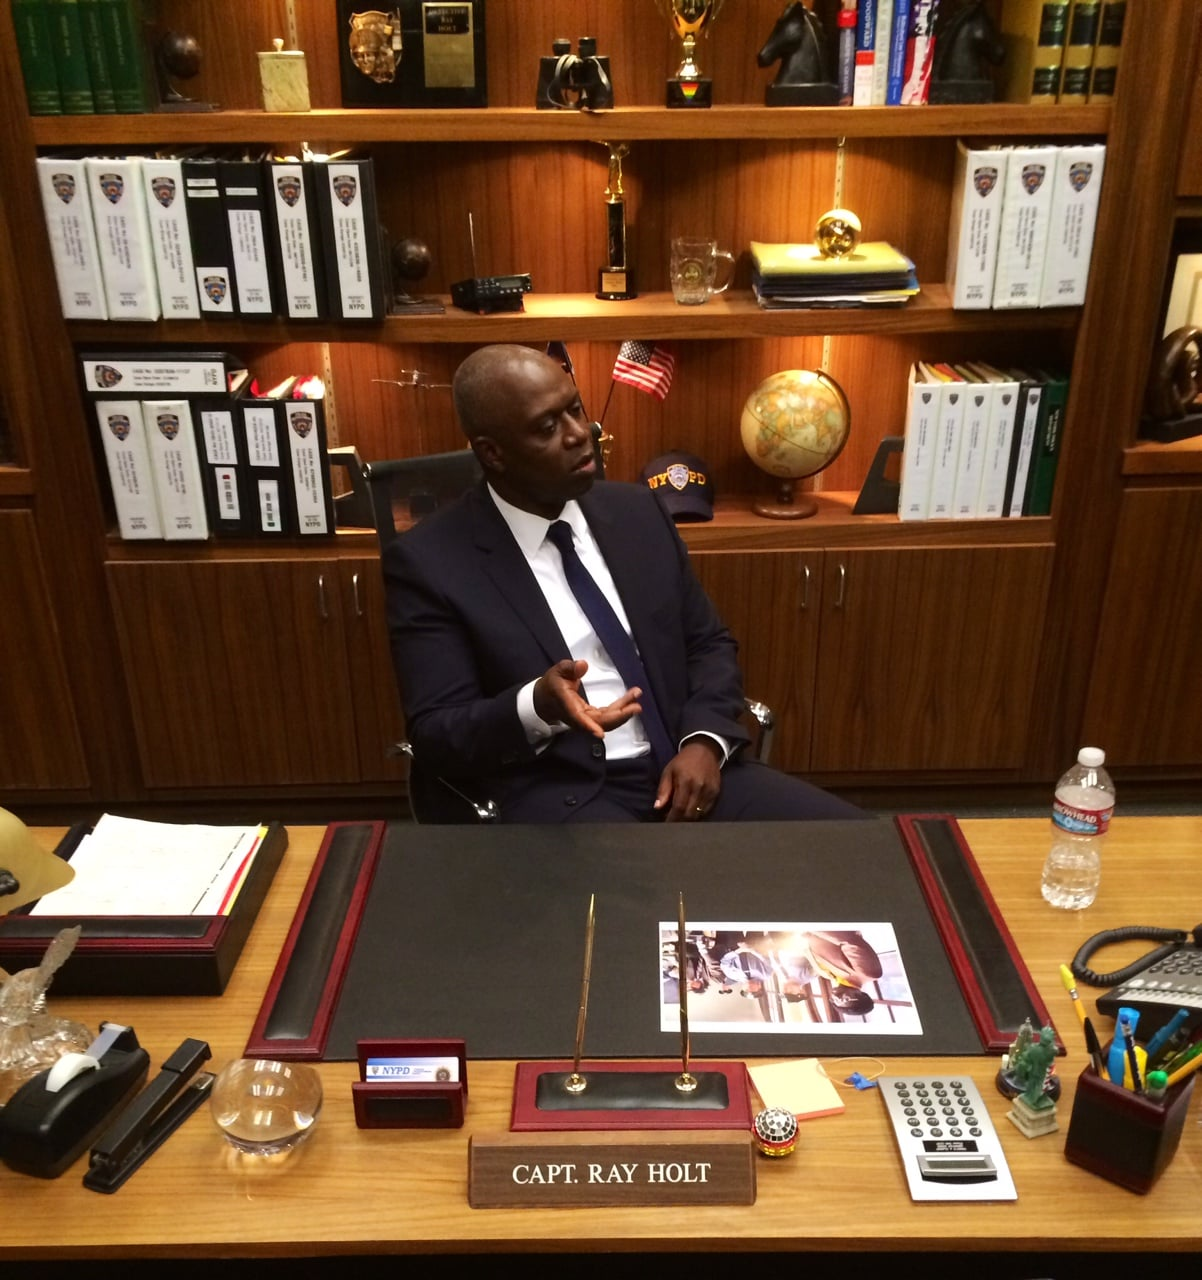 We caught up with Emmy nominee Andre Braugher at his onscreen desk.